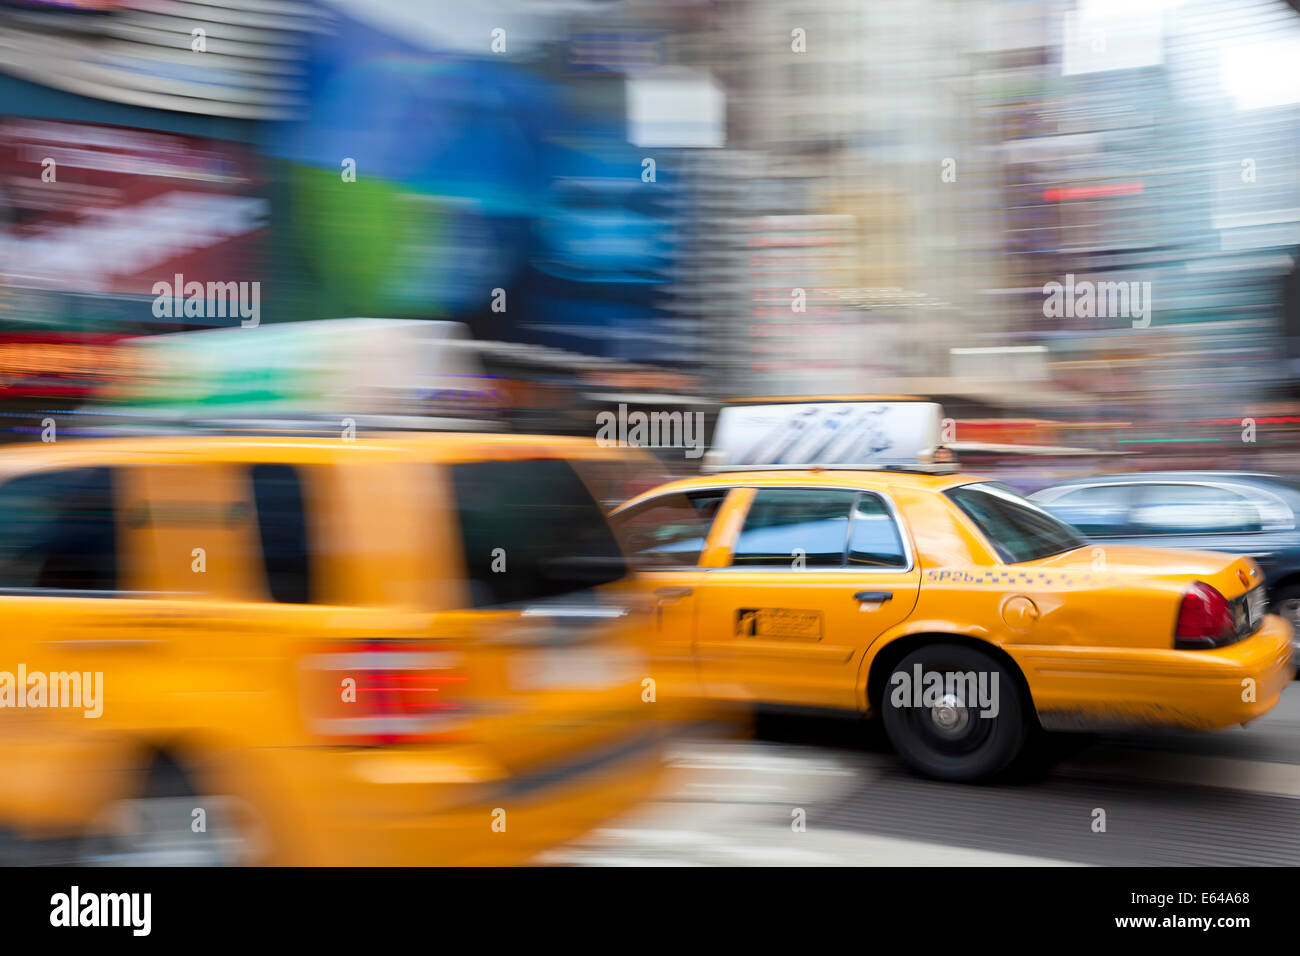 Yellow taxi Cabs, just off Times Square, Manhattan, New York - Stock Image